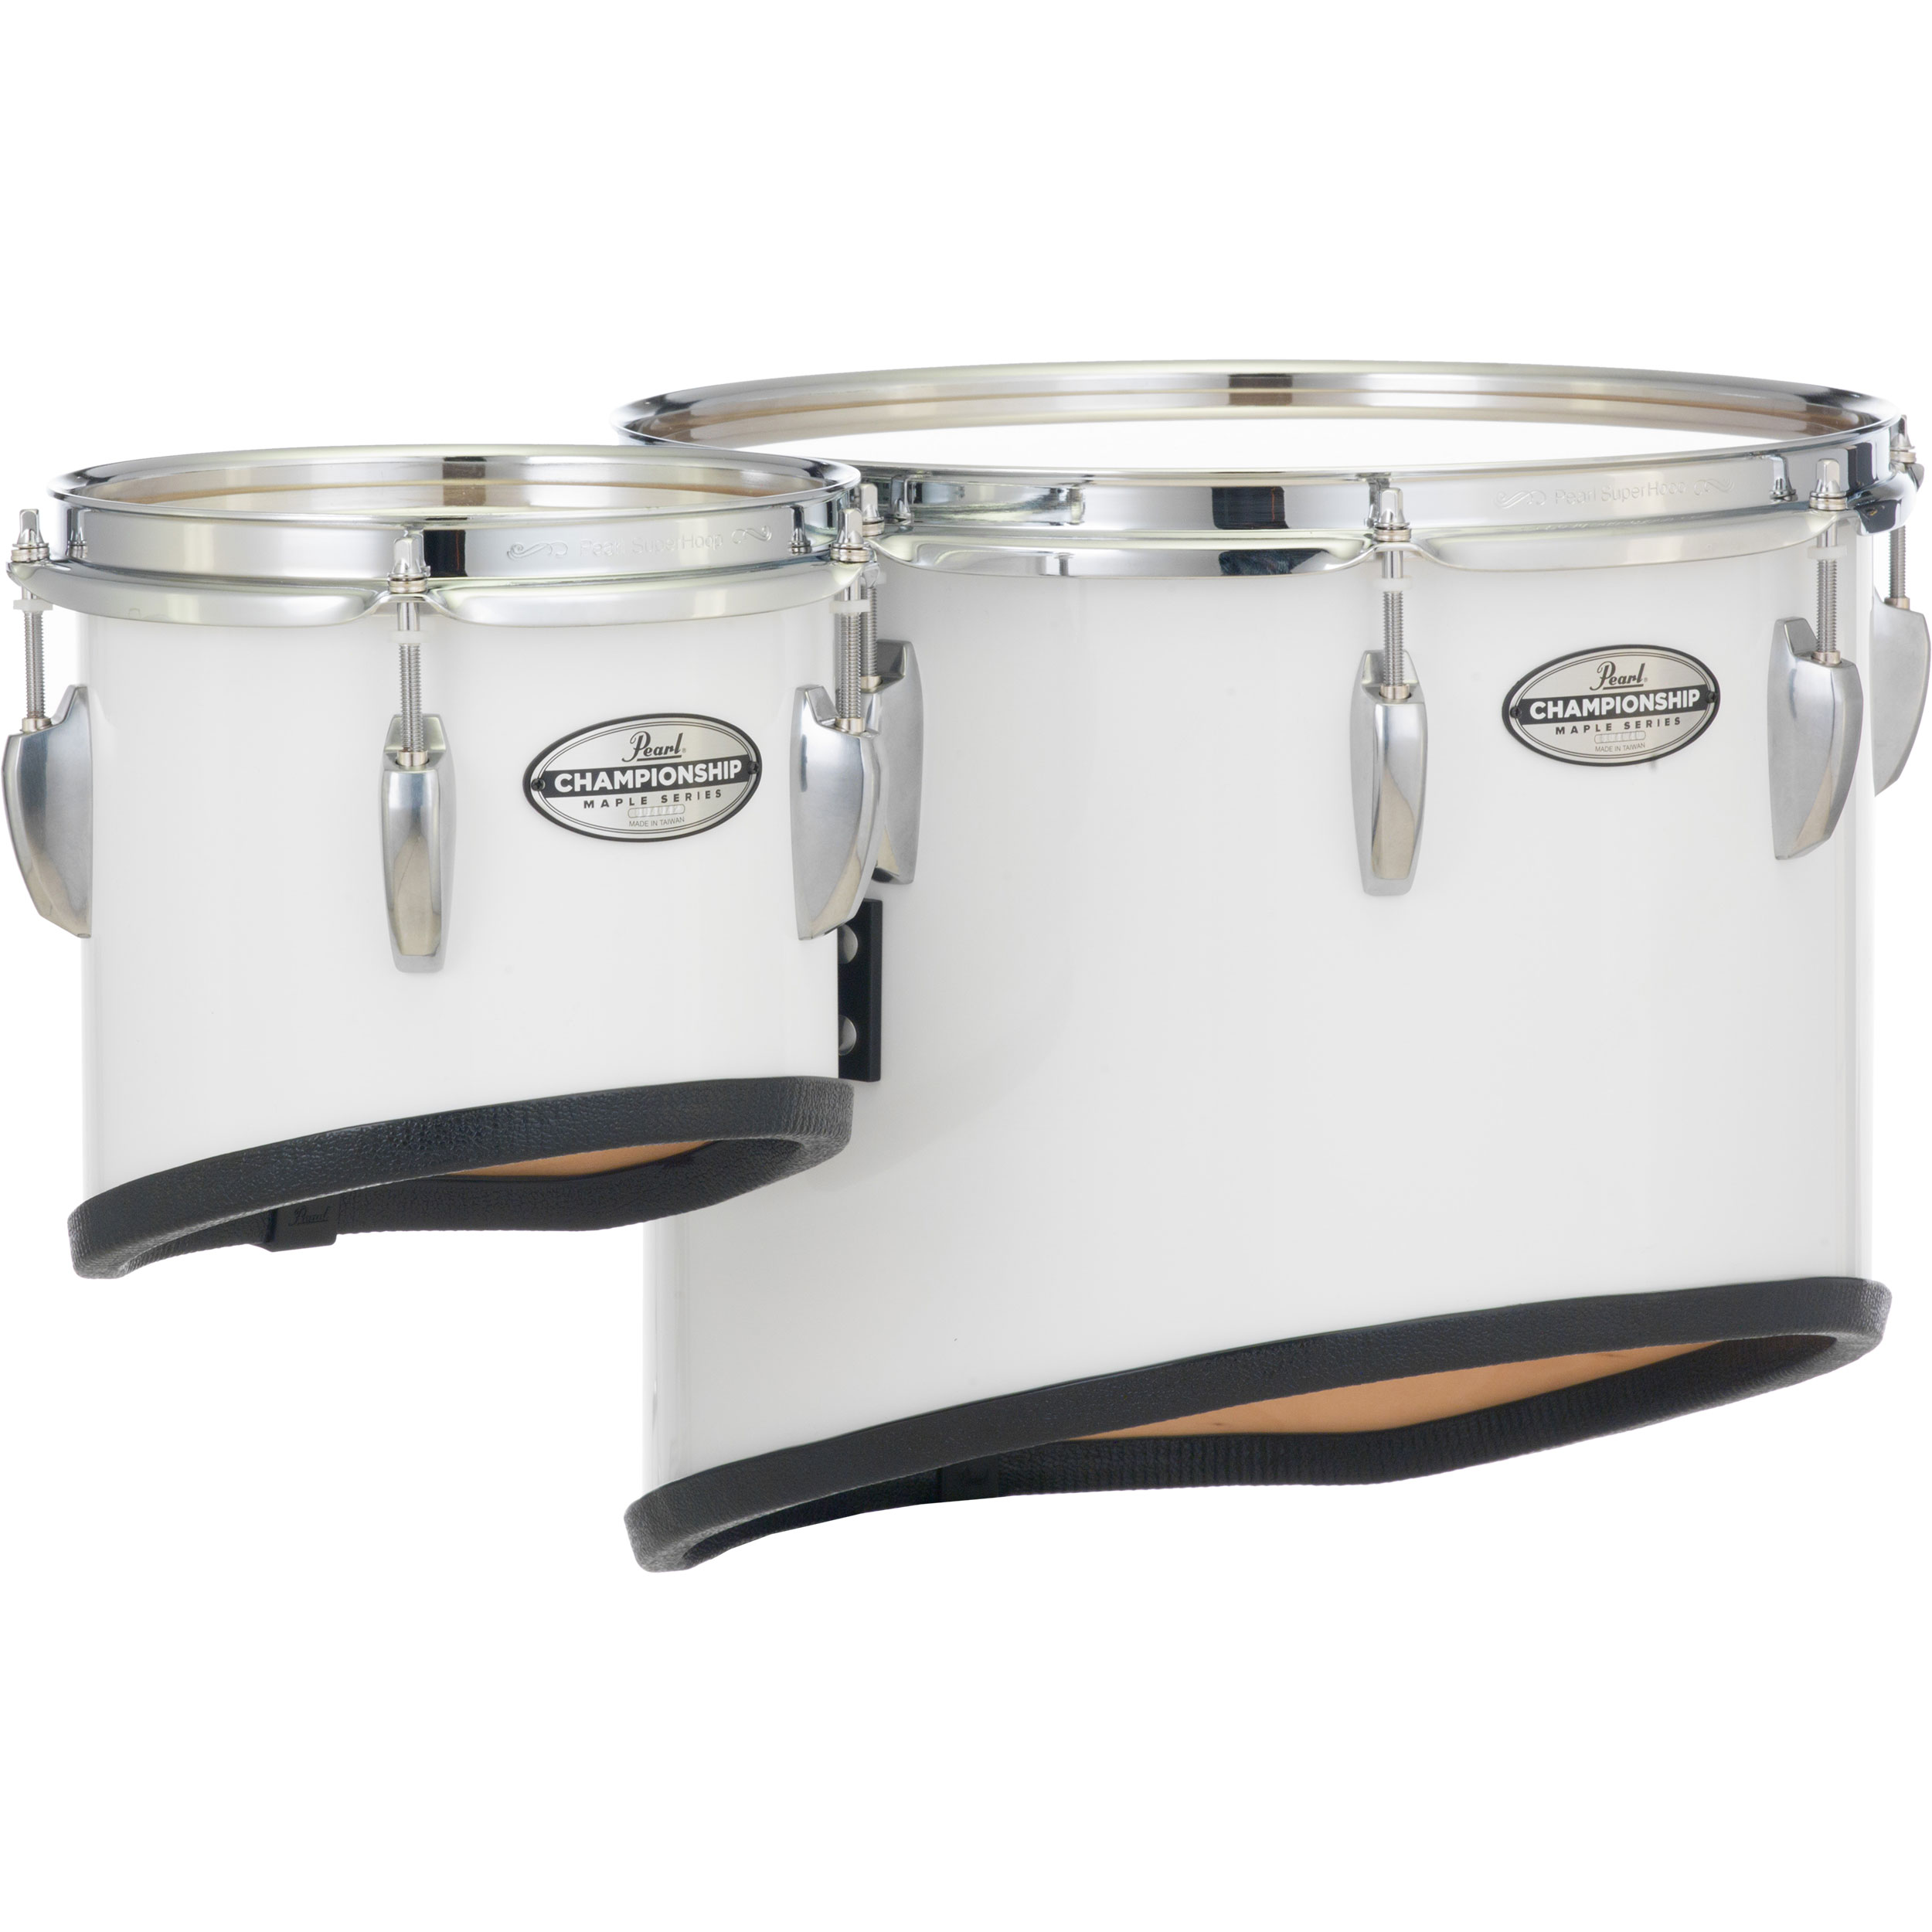 "Pearl 14""-8"" Championship Maple Sonic Cut Single Tenor Set with Mounts for CXS1 Carrier with Aluminum Hardware (Specify Finish)"